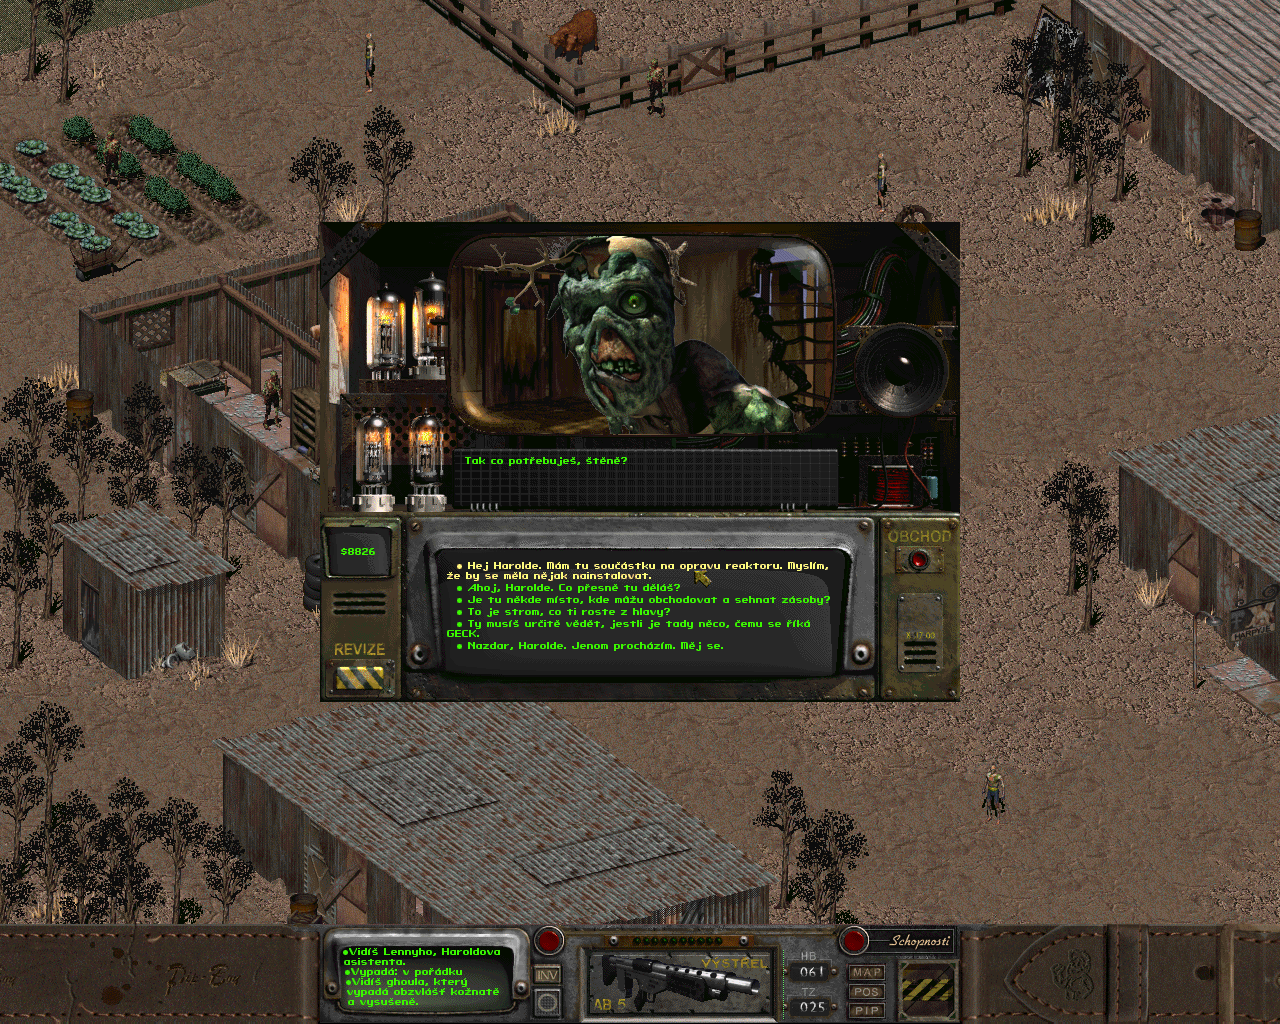 Fallout 2 high resolution patch screenshots on snapchat